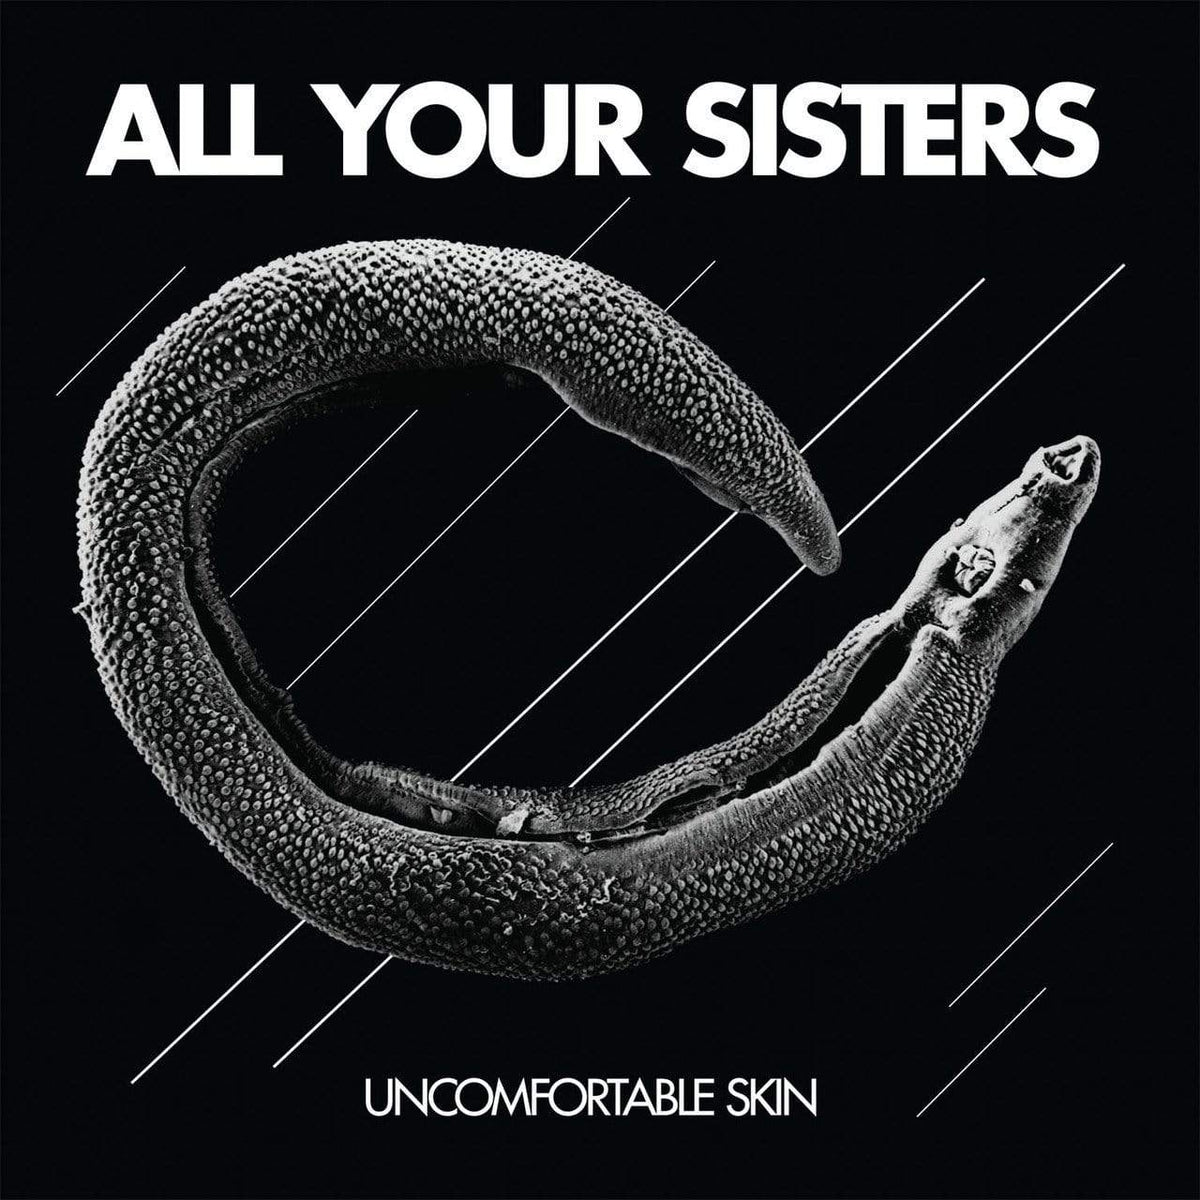 "The Flenser Vinyl,Flenser Releases Black Vinyl All Your Sisters ""Uncomfortable Skin"" LP"